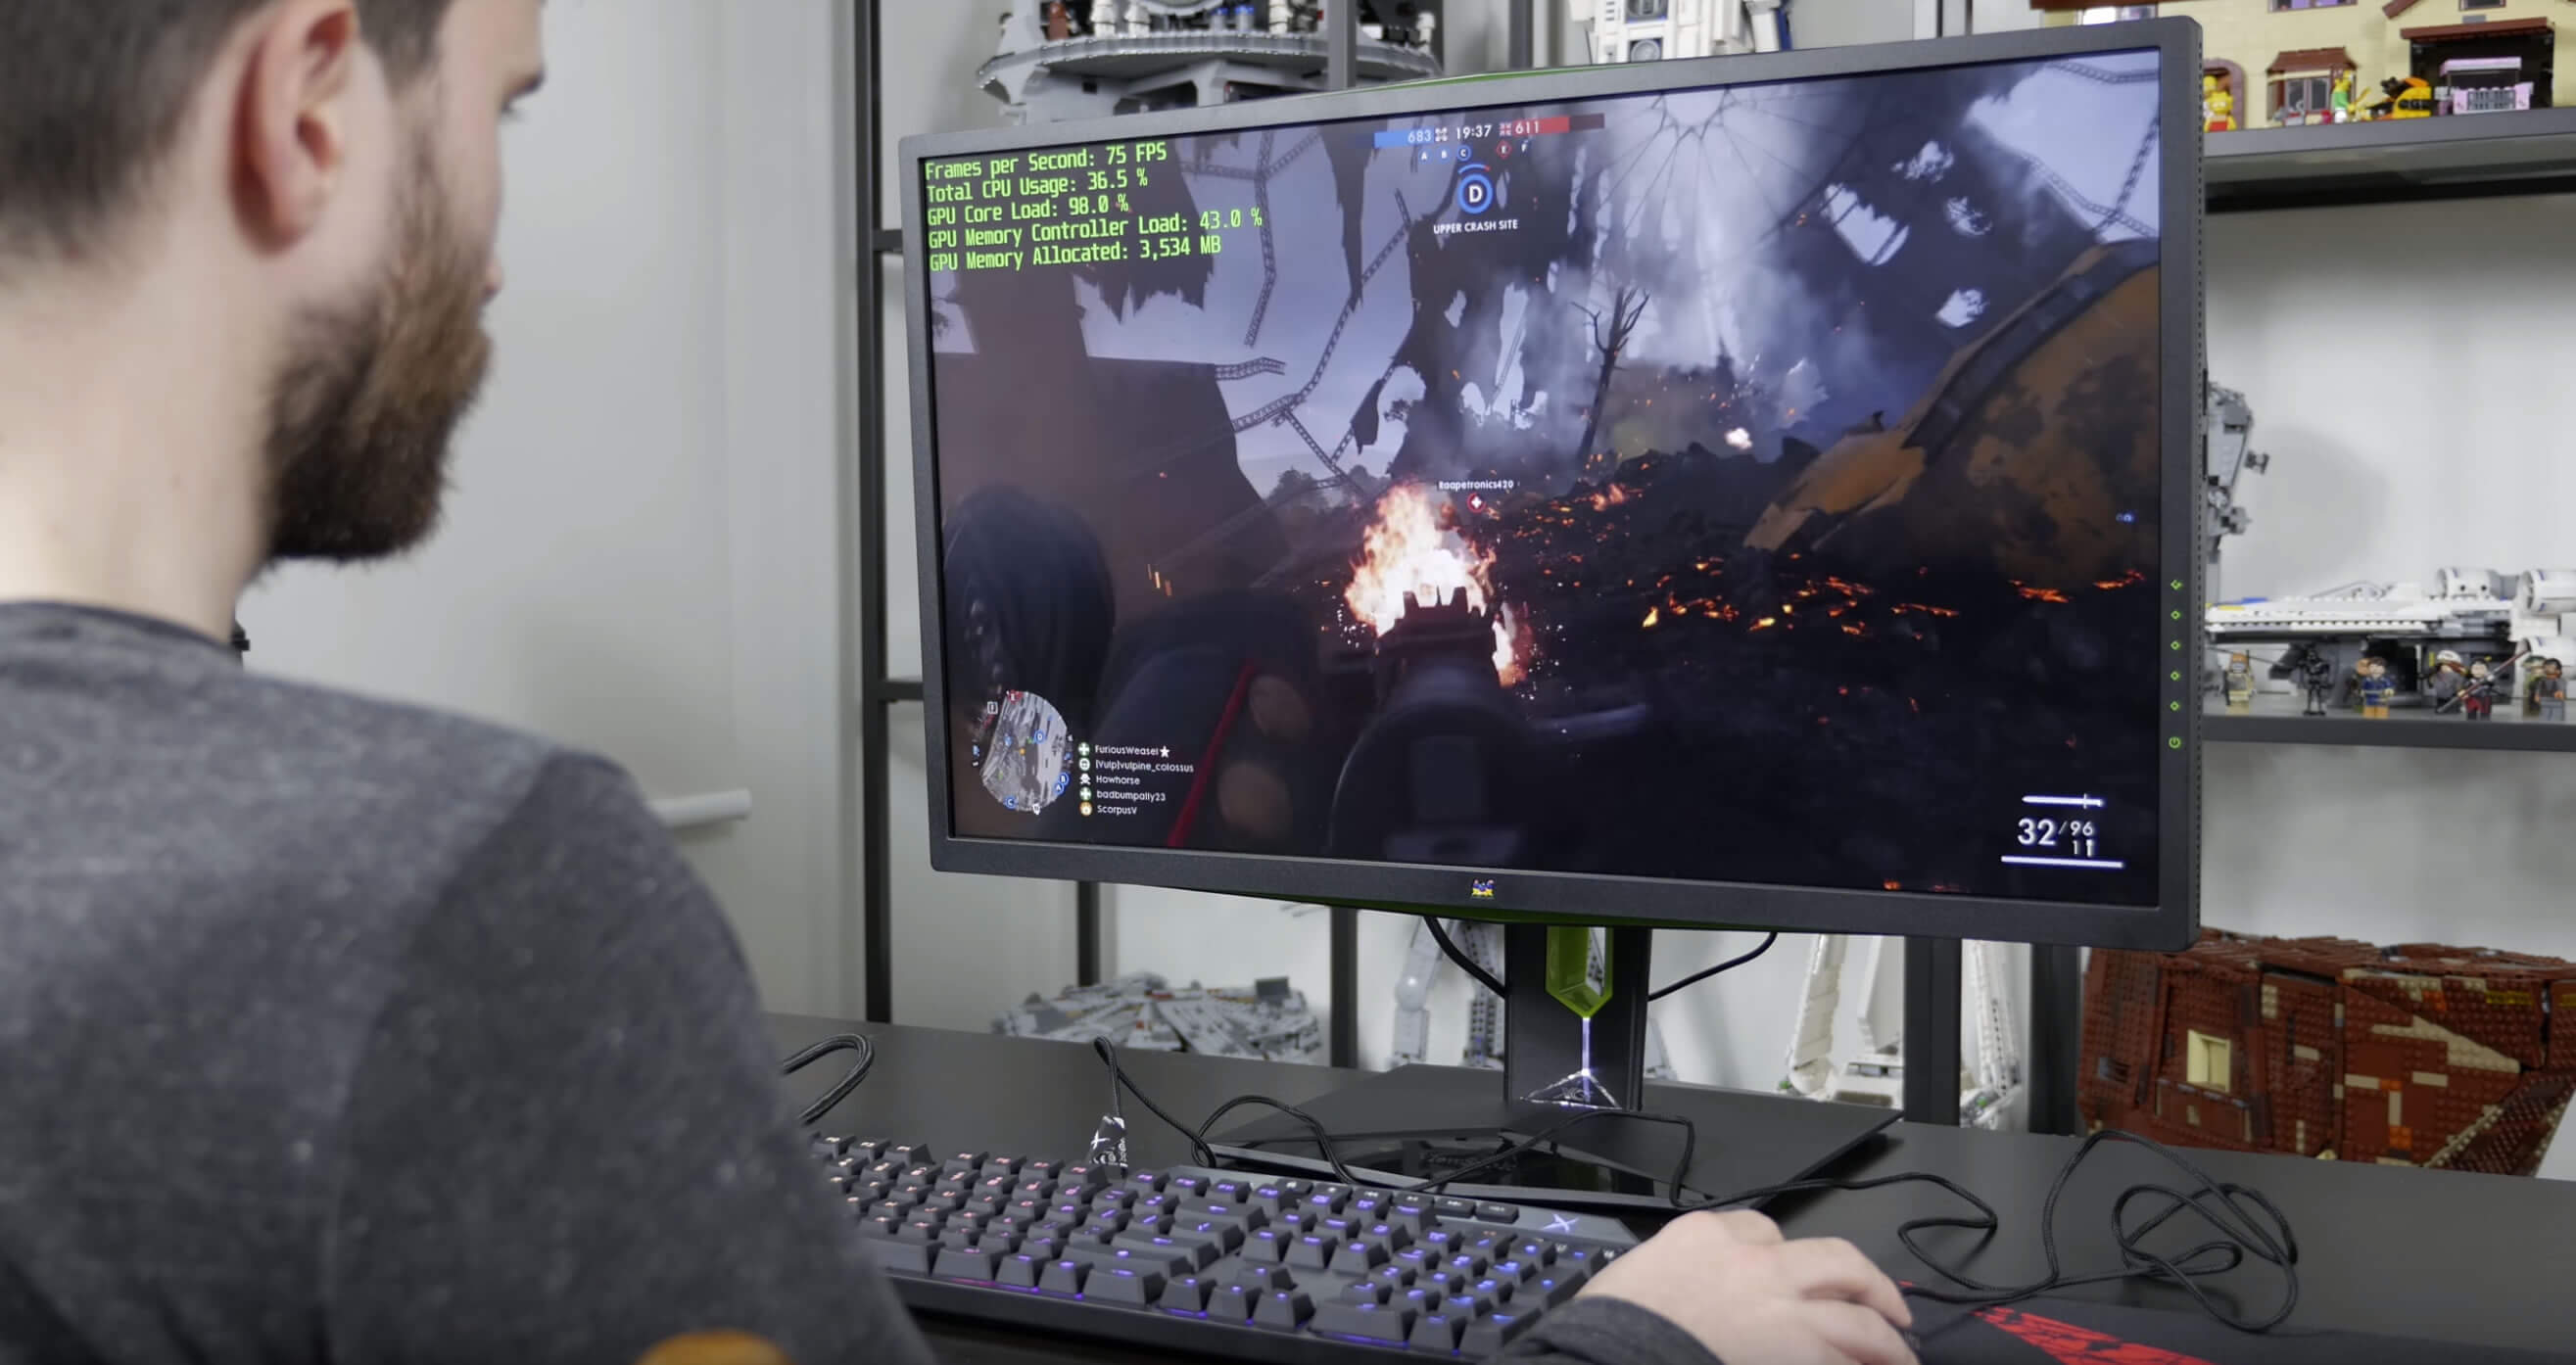 G-Sync Or Free-Sync Gaming Monitor - Which One Should I Buy